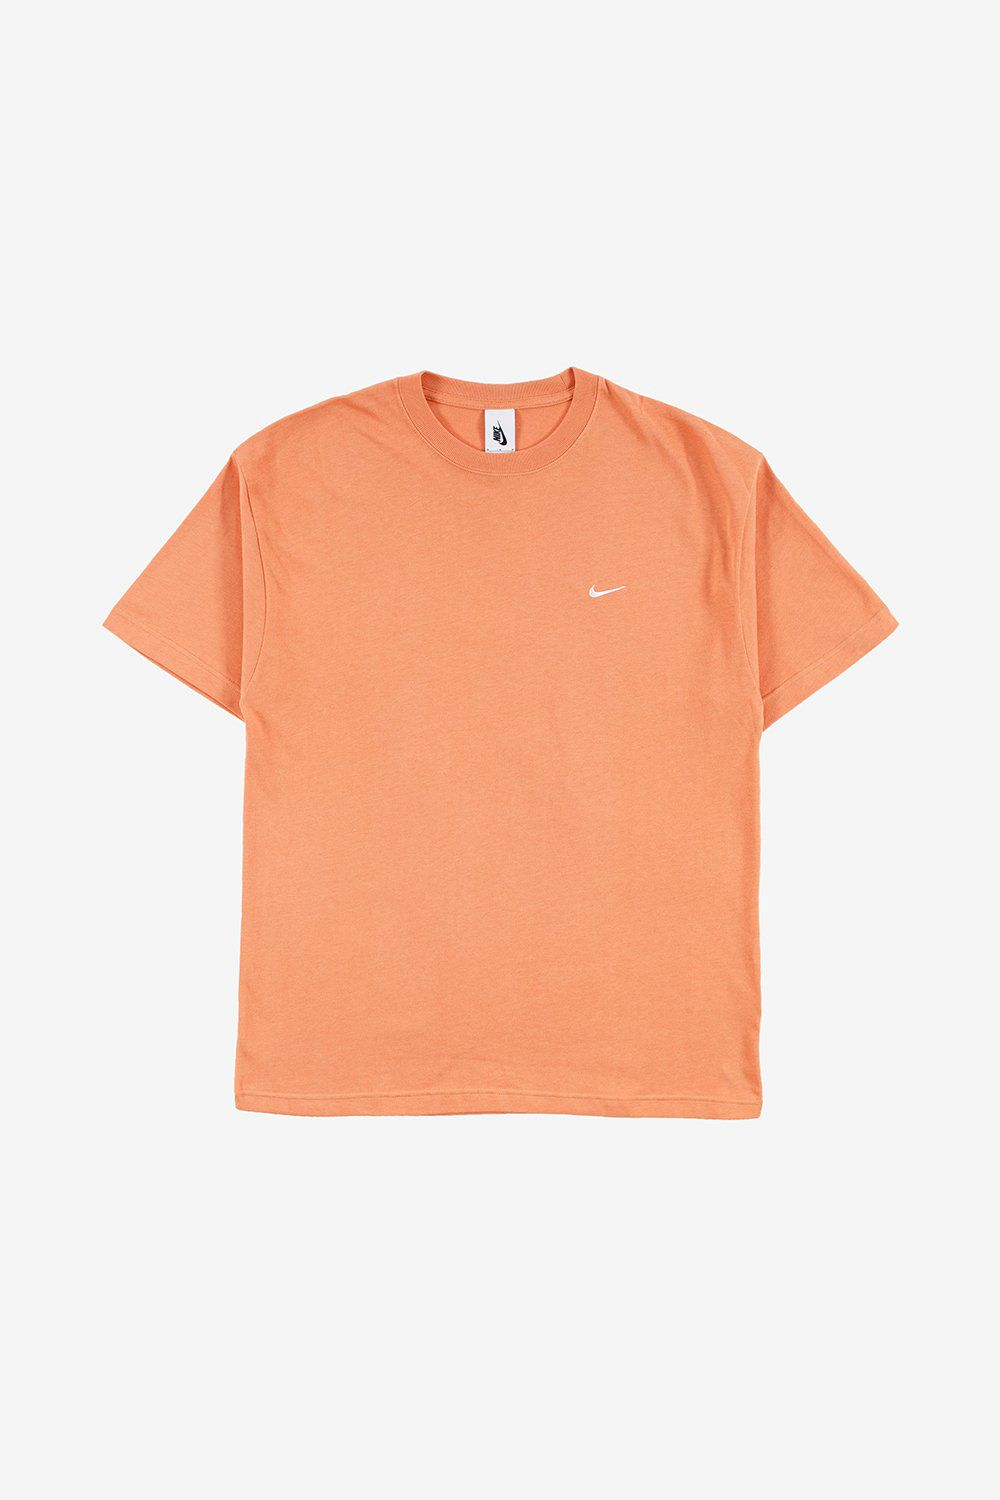 Nike Apparel NikeLab Men's T-shirt